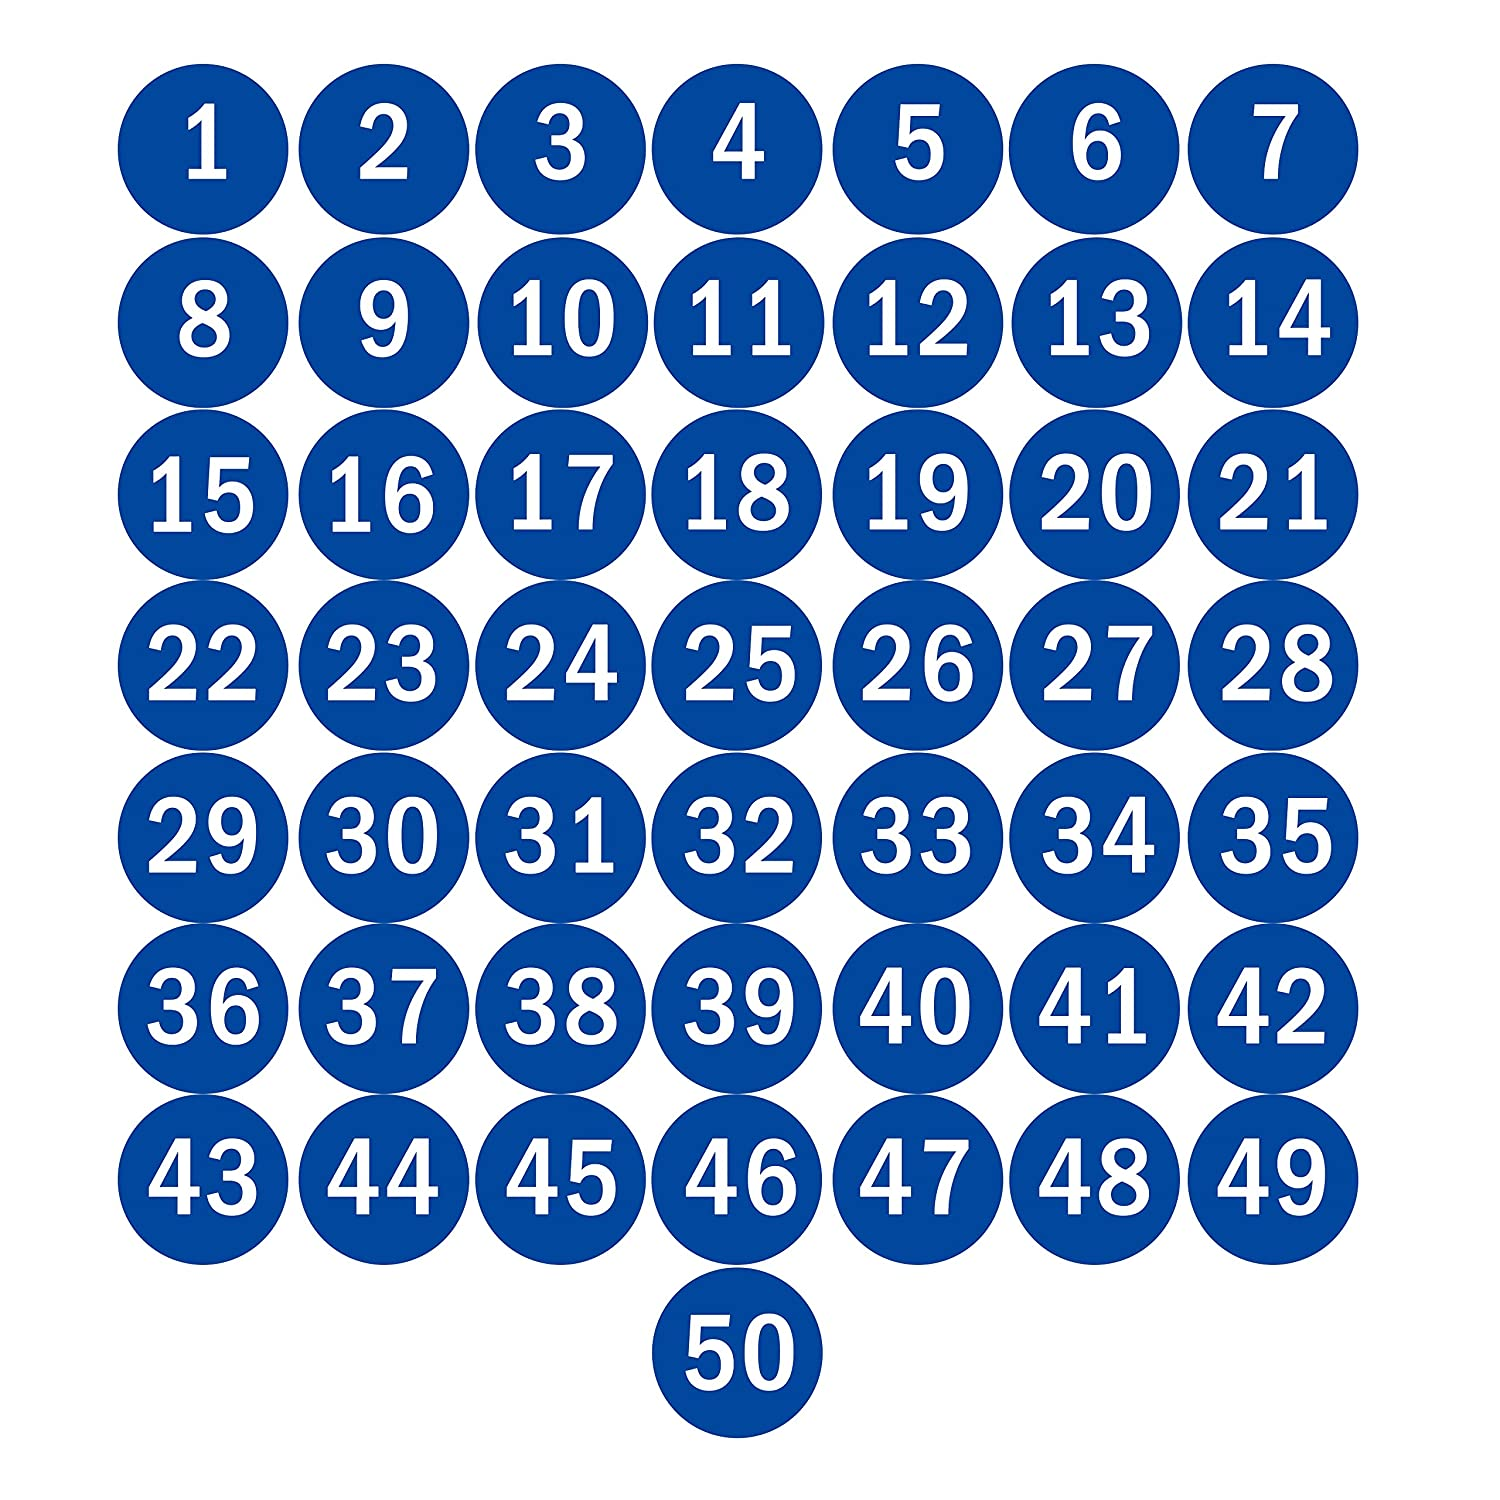 Amazon com navadeal 2 3 round number 1 50 adhesive stickers in blue red black color inventory storage labels great for marking bins or toolbox